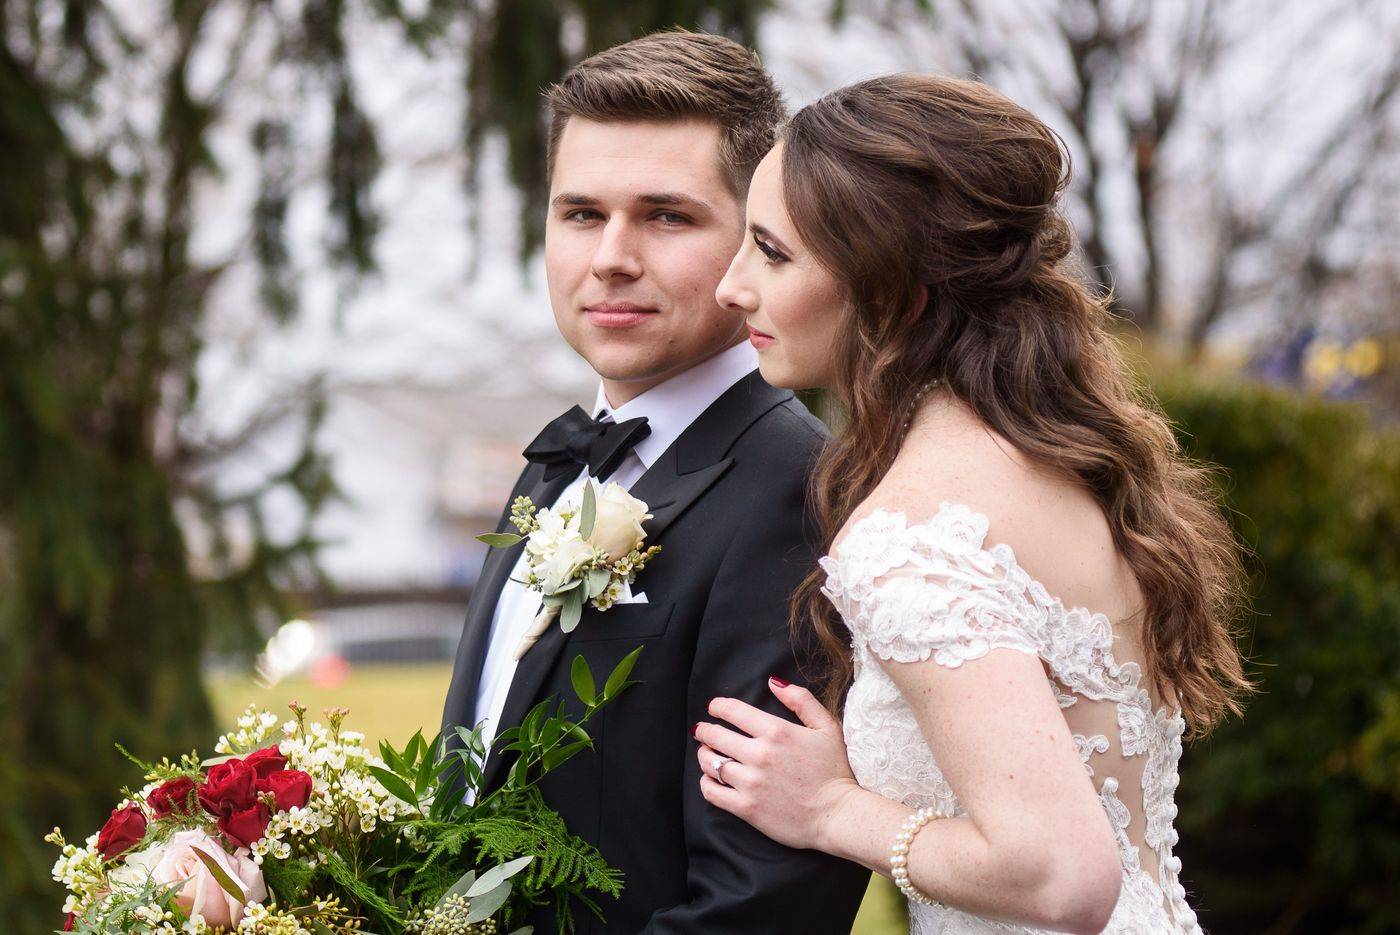 Local Couple Ties Knot to Instrumental Versions of Themes from Broadway Musicals They Have Seen Together